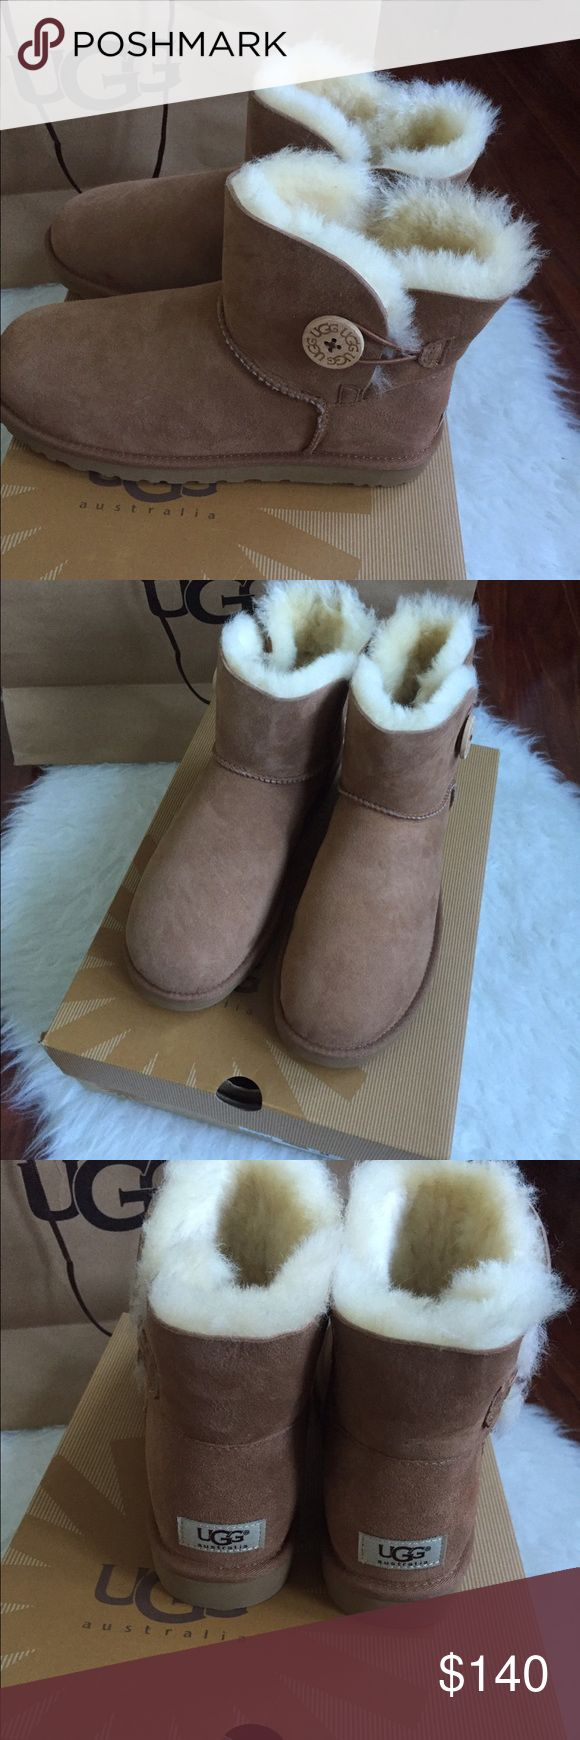 UGG NEW BAILEY BUTTON WOMEN🐨🐨🐨 New with tag and box bought at UGG store receipt available.100% authentic.These beauties are fully wool lined will keep your feet warm and comfortable for many winters to come .Don't miss out🐨🐨 UGG Shoes Ankle Boots & Booties